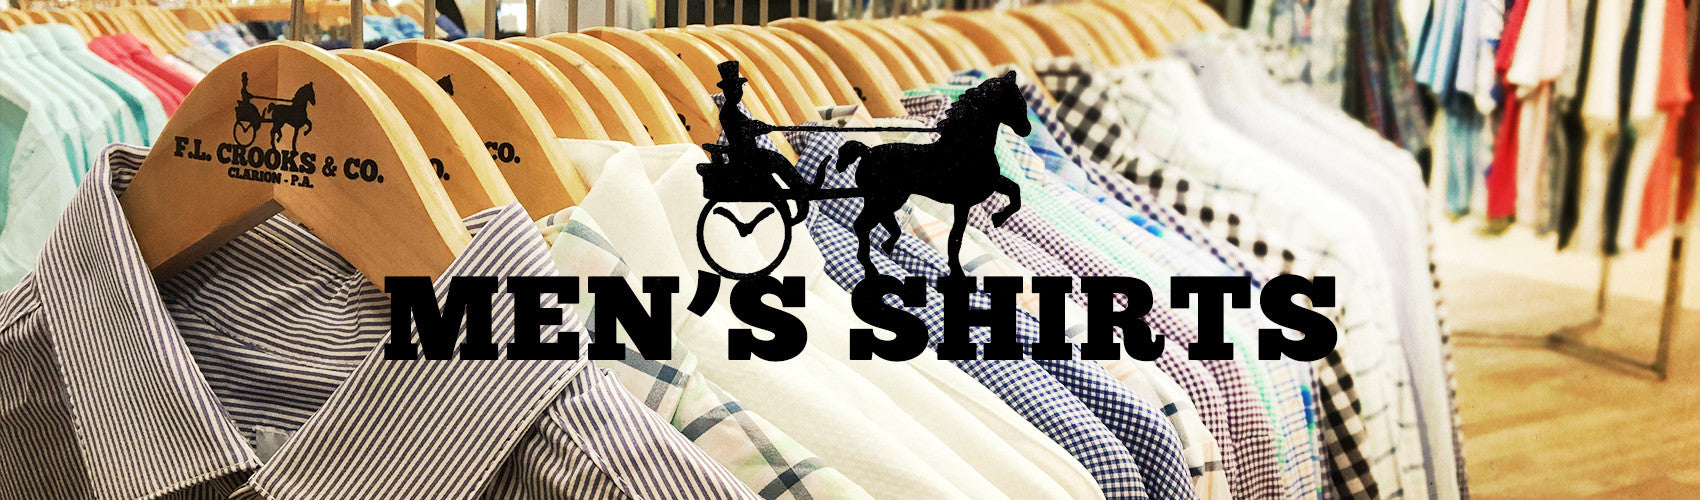 mens shirts dress shirts  short sleeve shirts long sleeve shirts